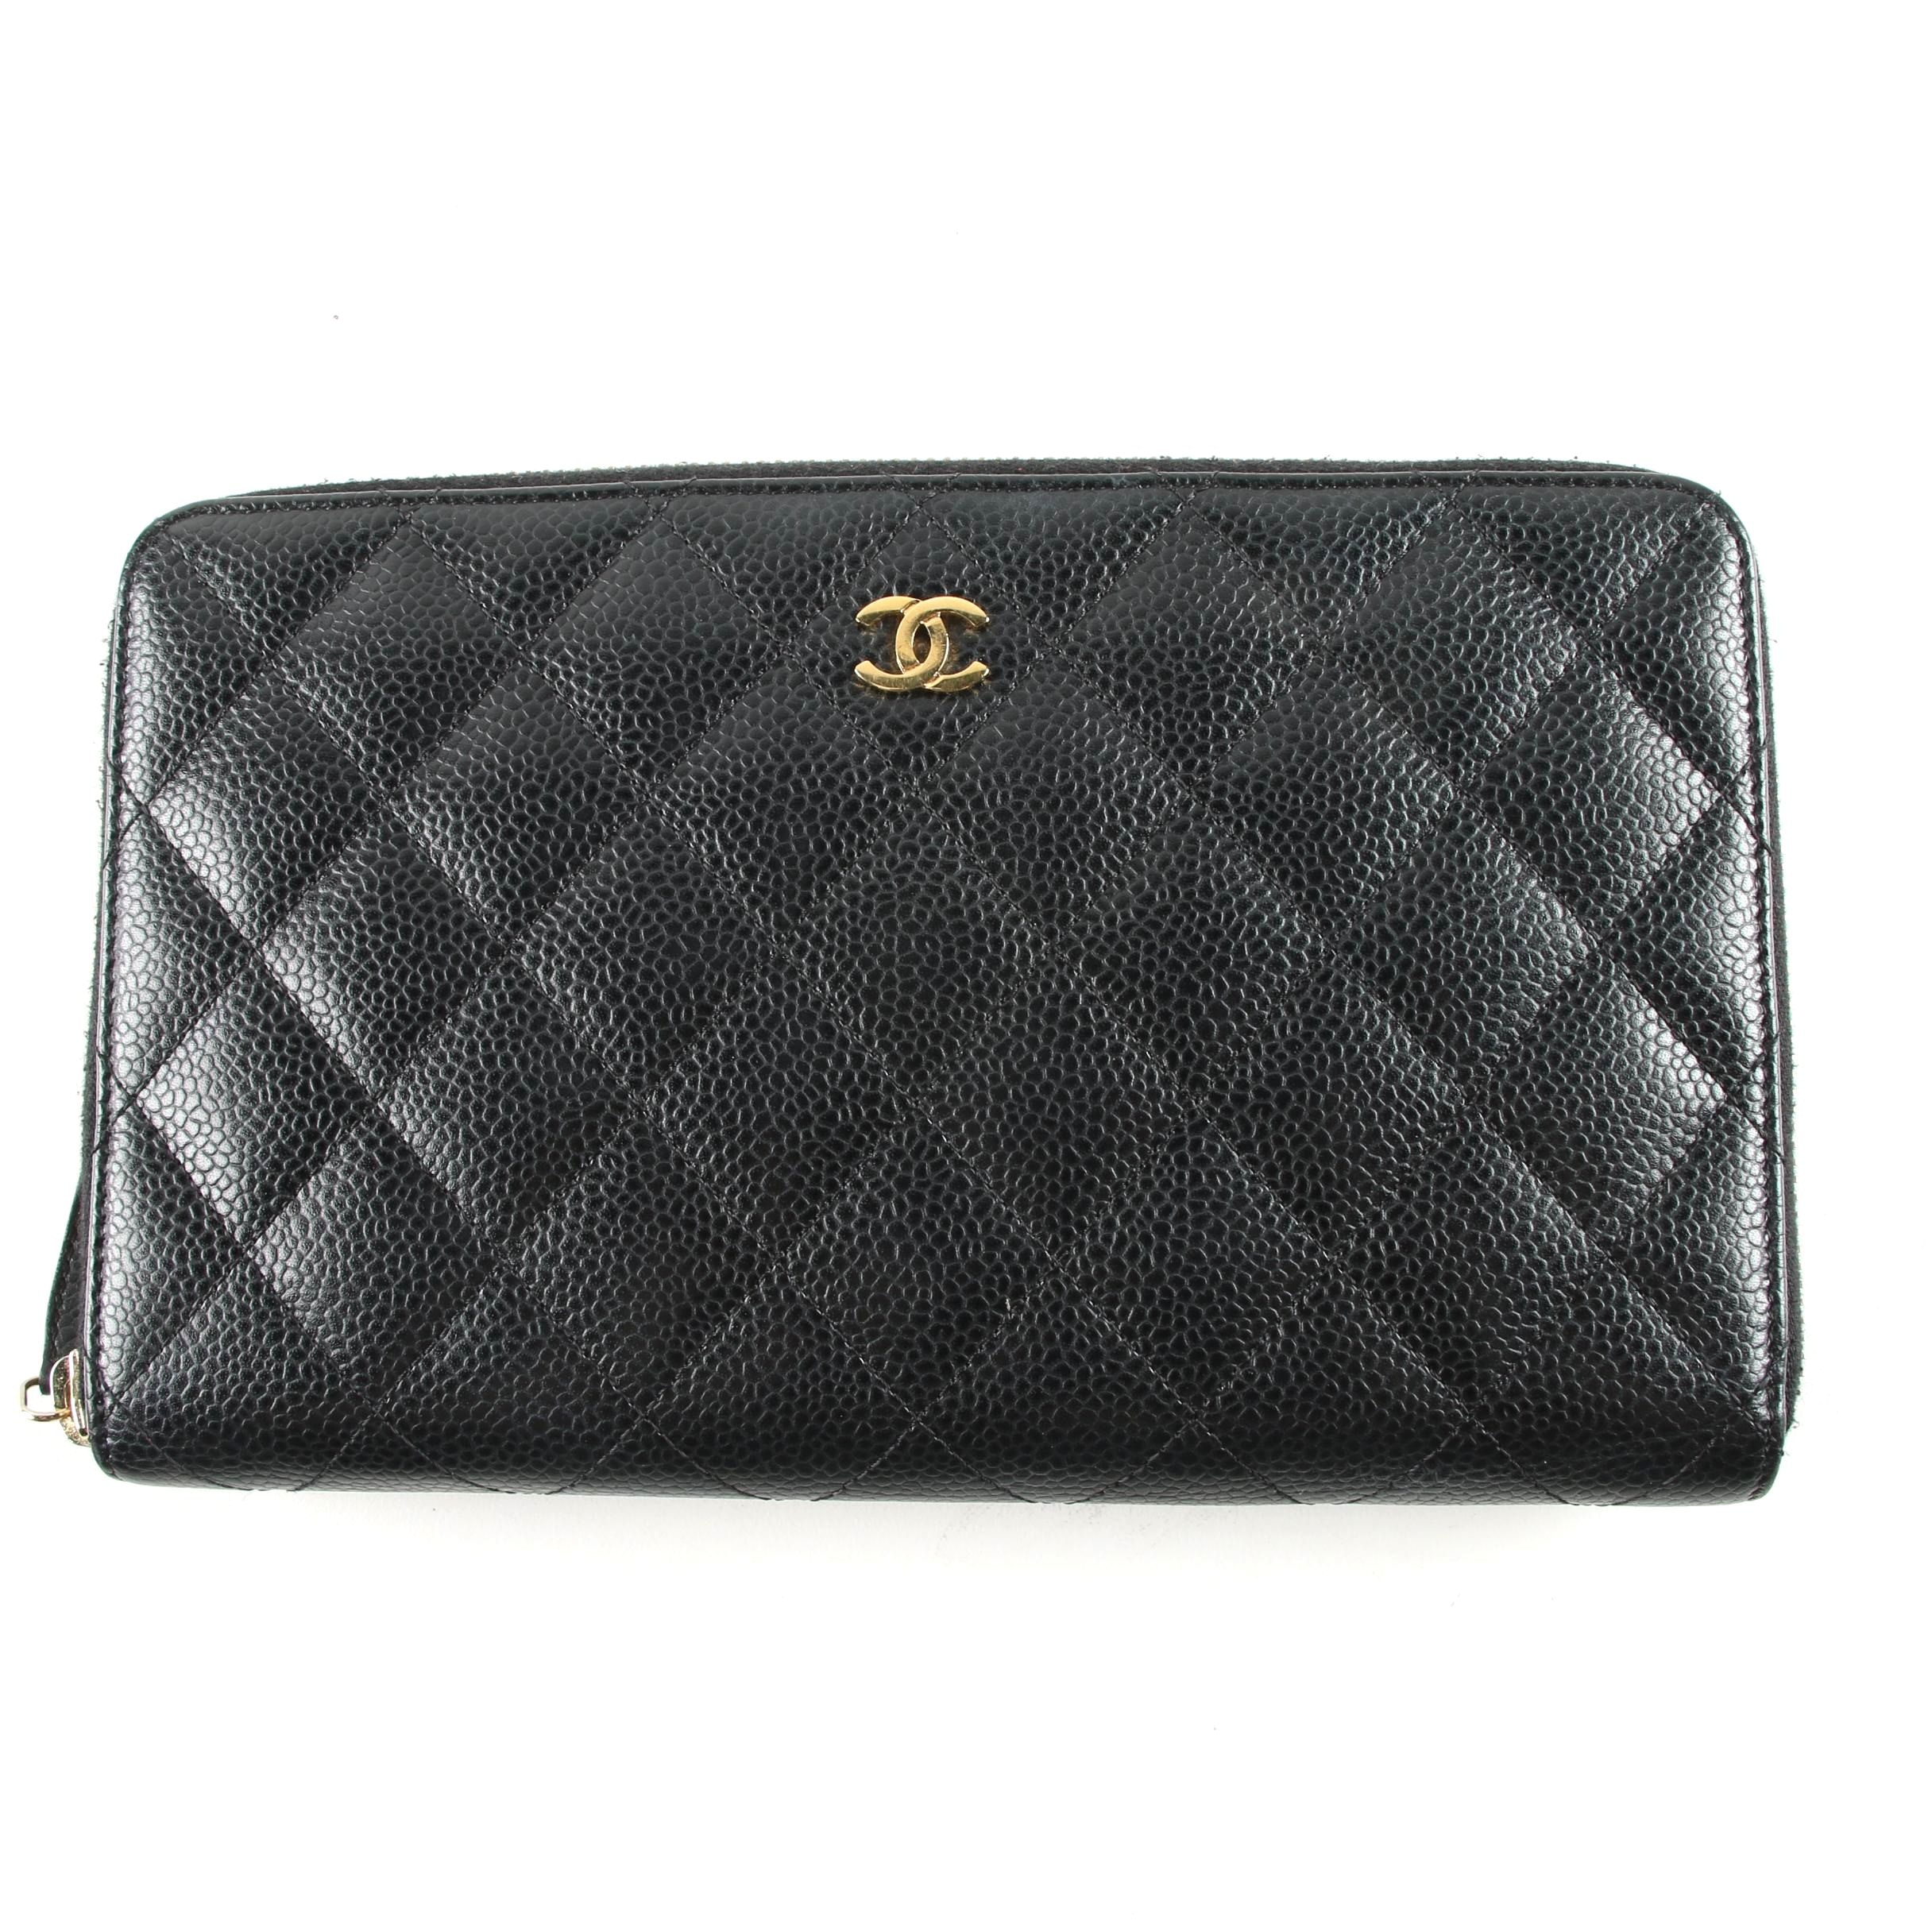 Chanel Black Quilted Caviar Leather Zip-Around Wallet